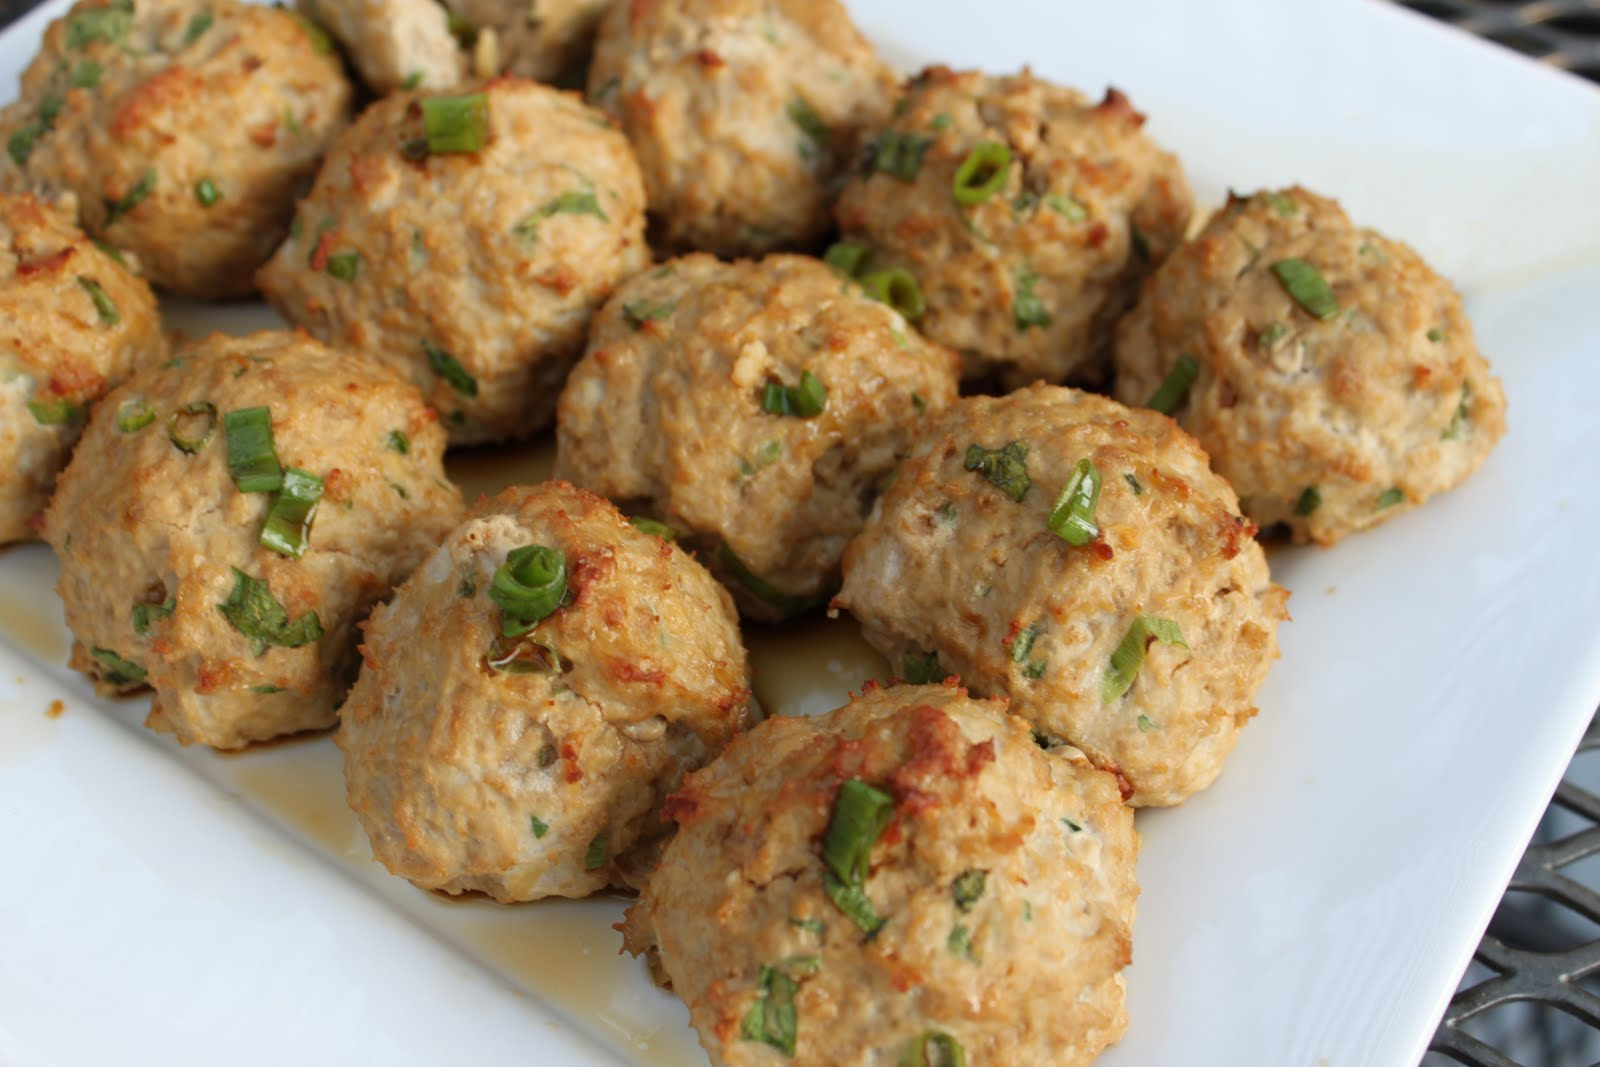 Erin's Eatery: Asian Turkey Meatballs With Lime Sesame Dipping Sauce